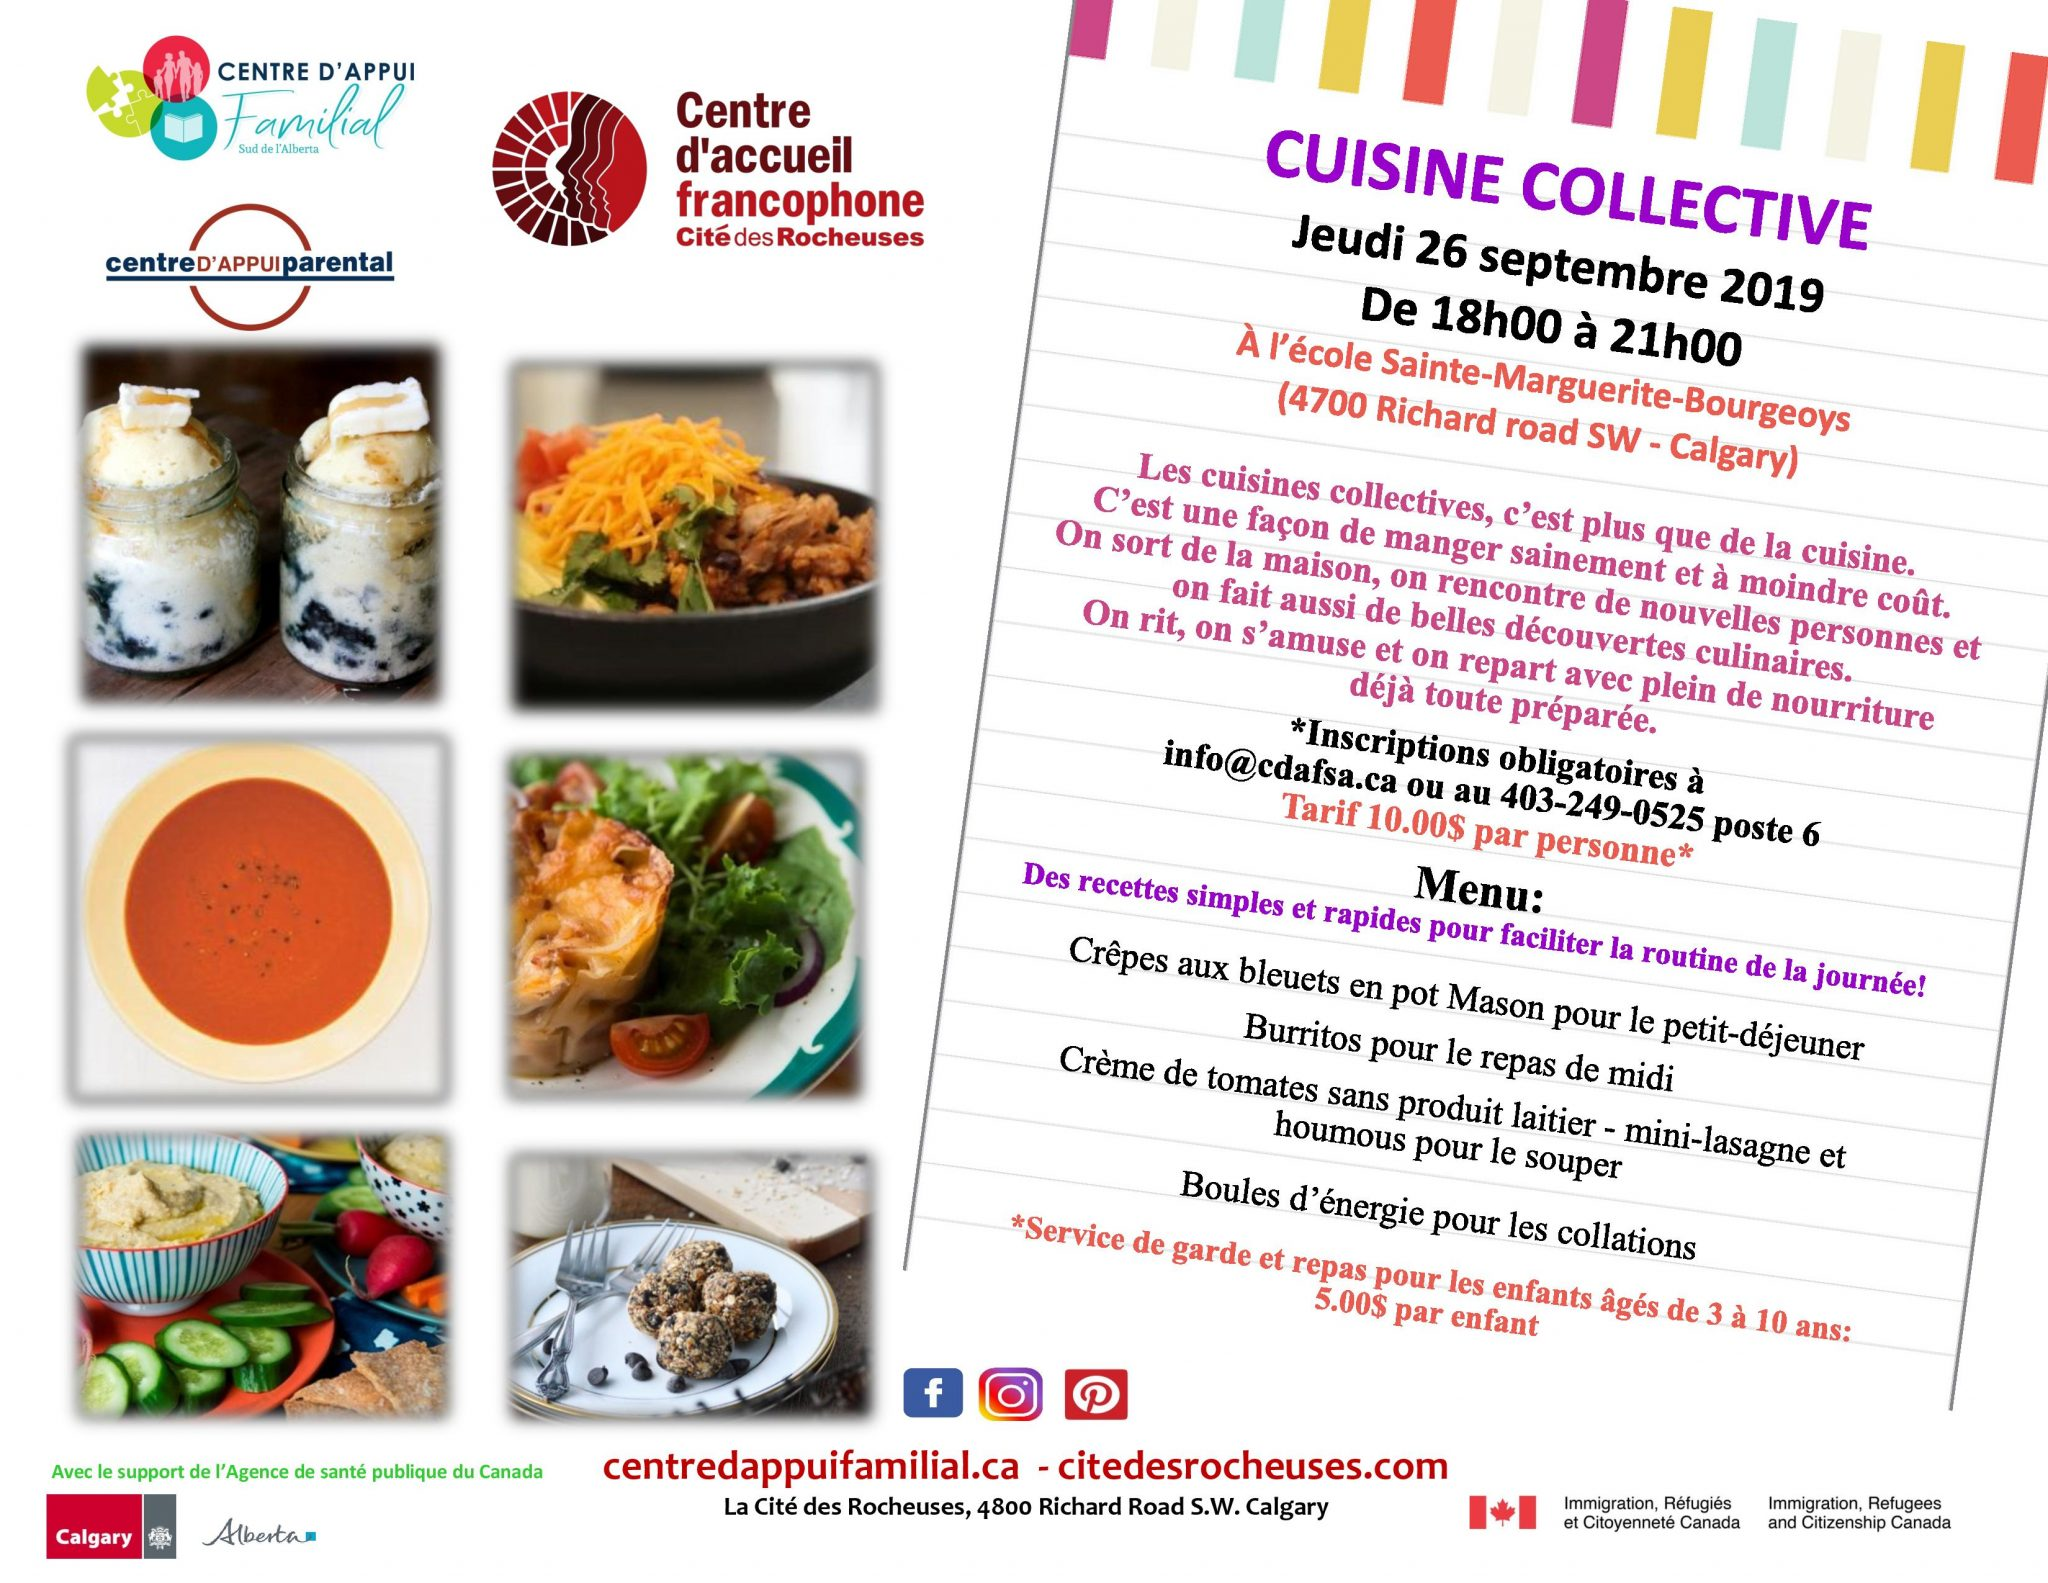 Cuisine Collective 26/09/2019